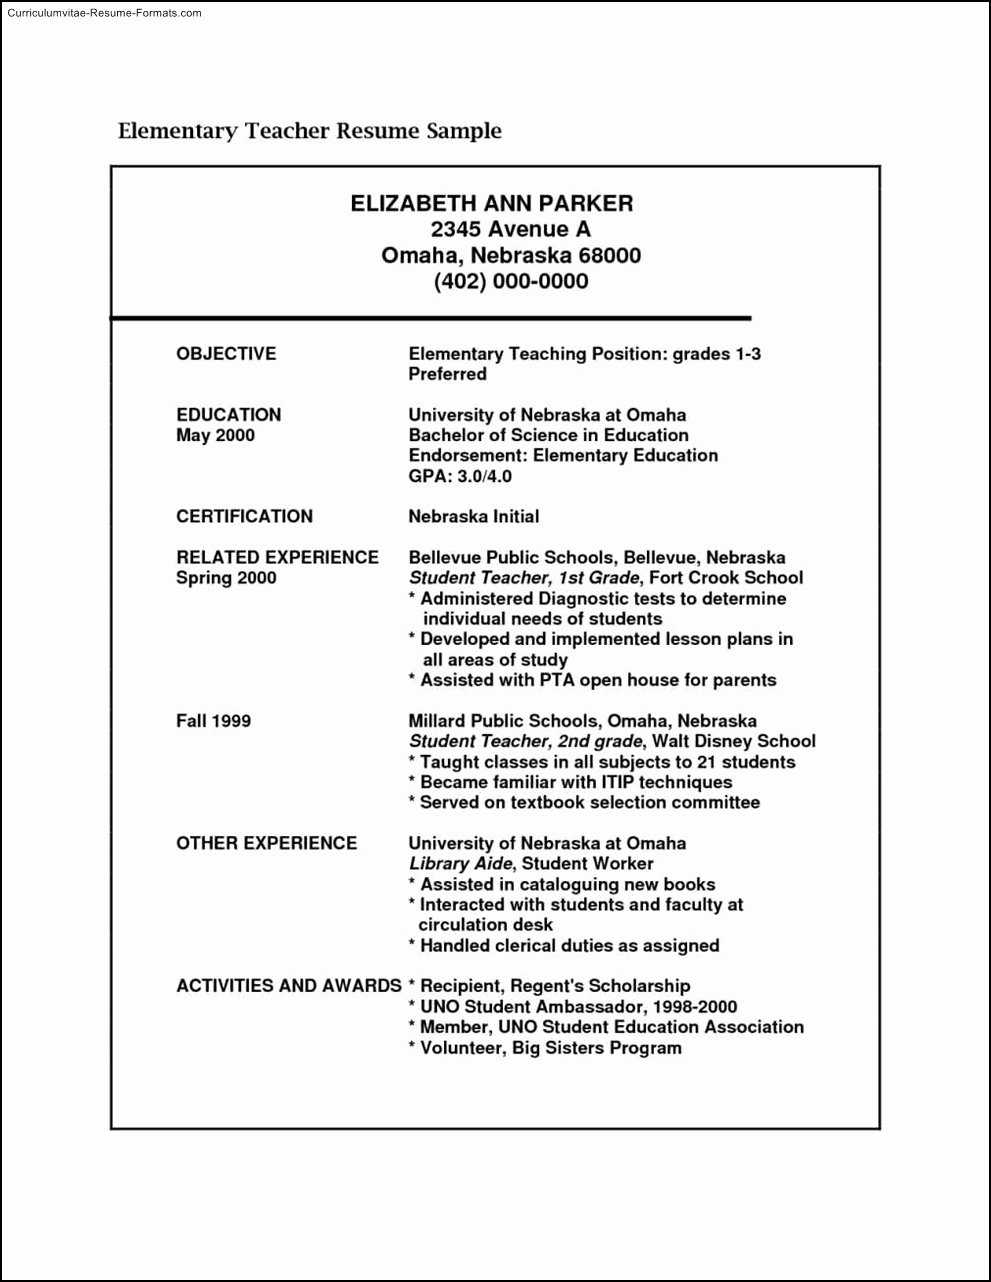 Free Elementary Teacher Resume Templates Free Samples